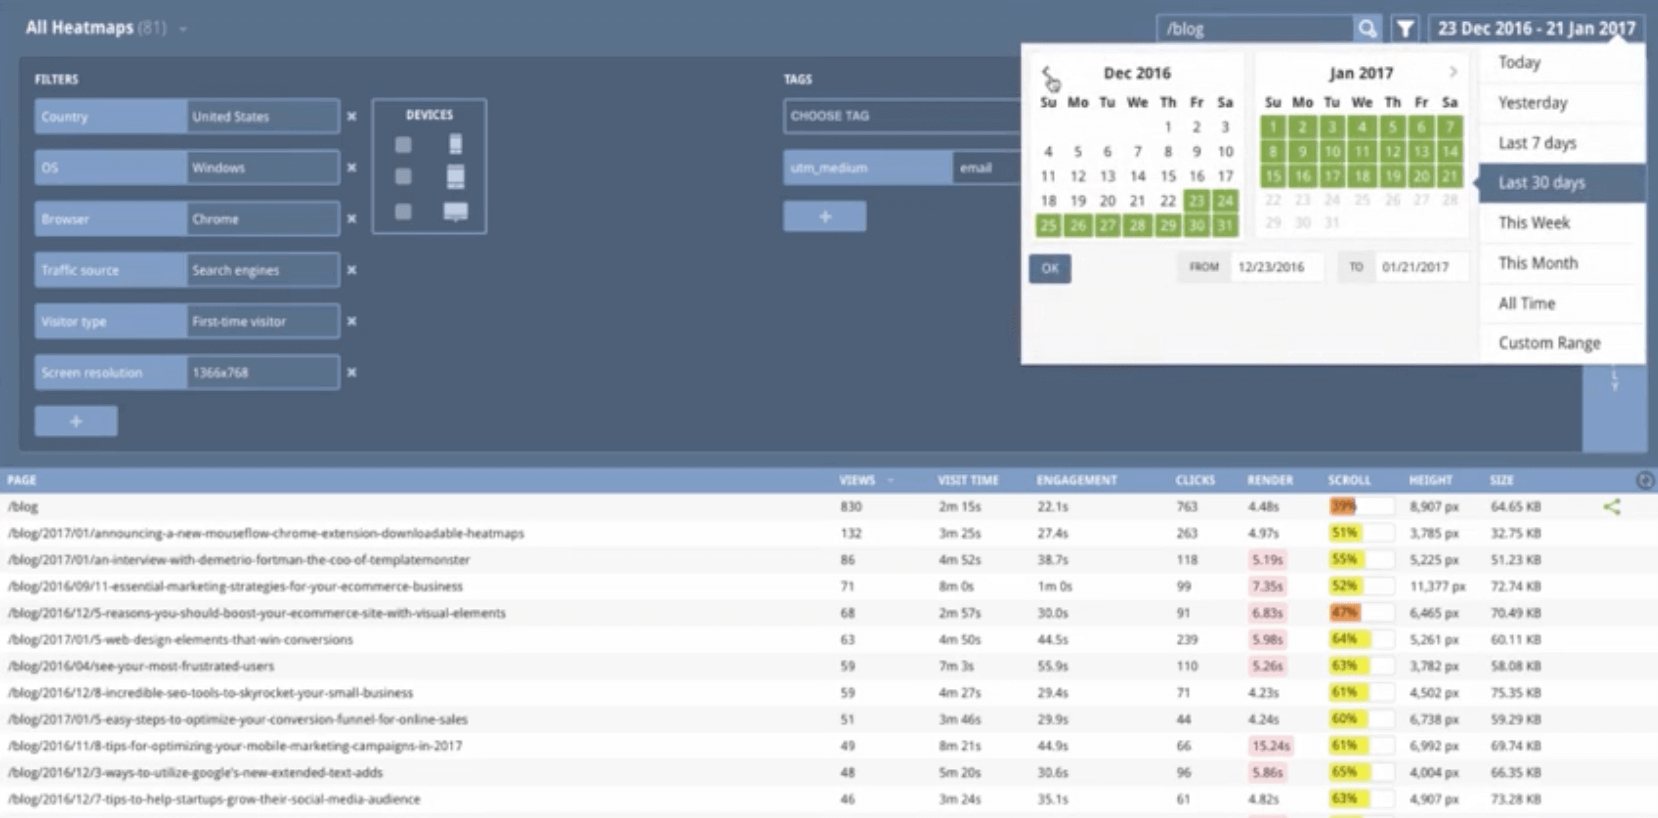 Heatmaps dashboard multiple device analytics in a time frame